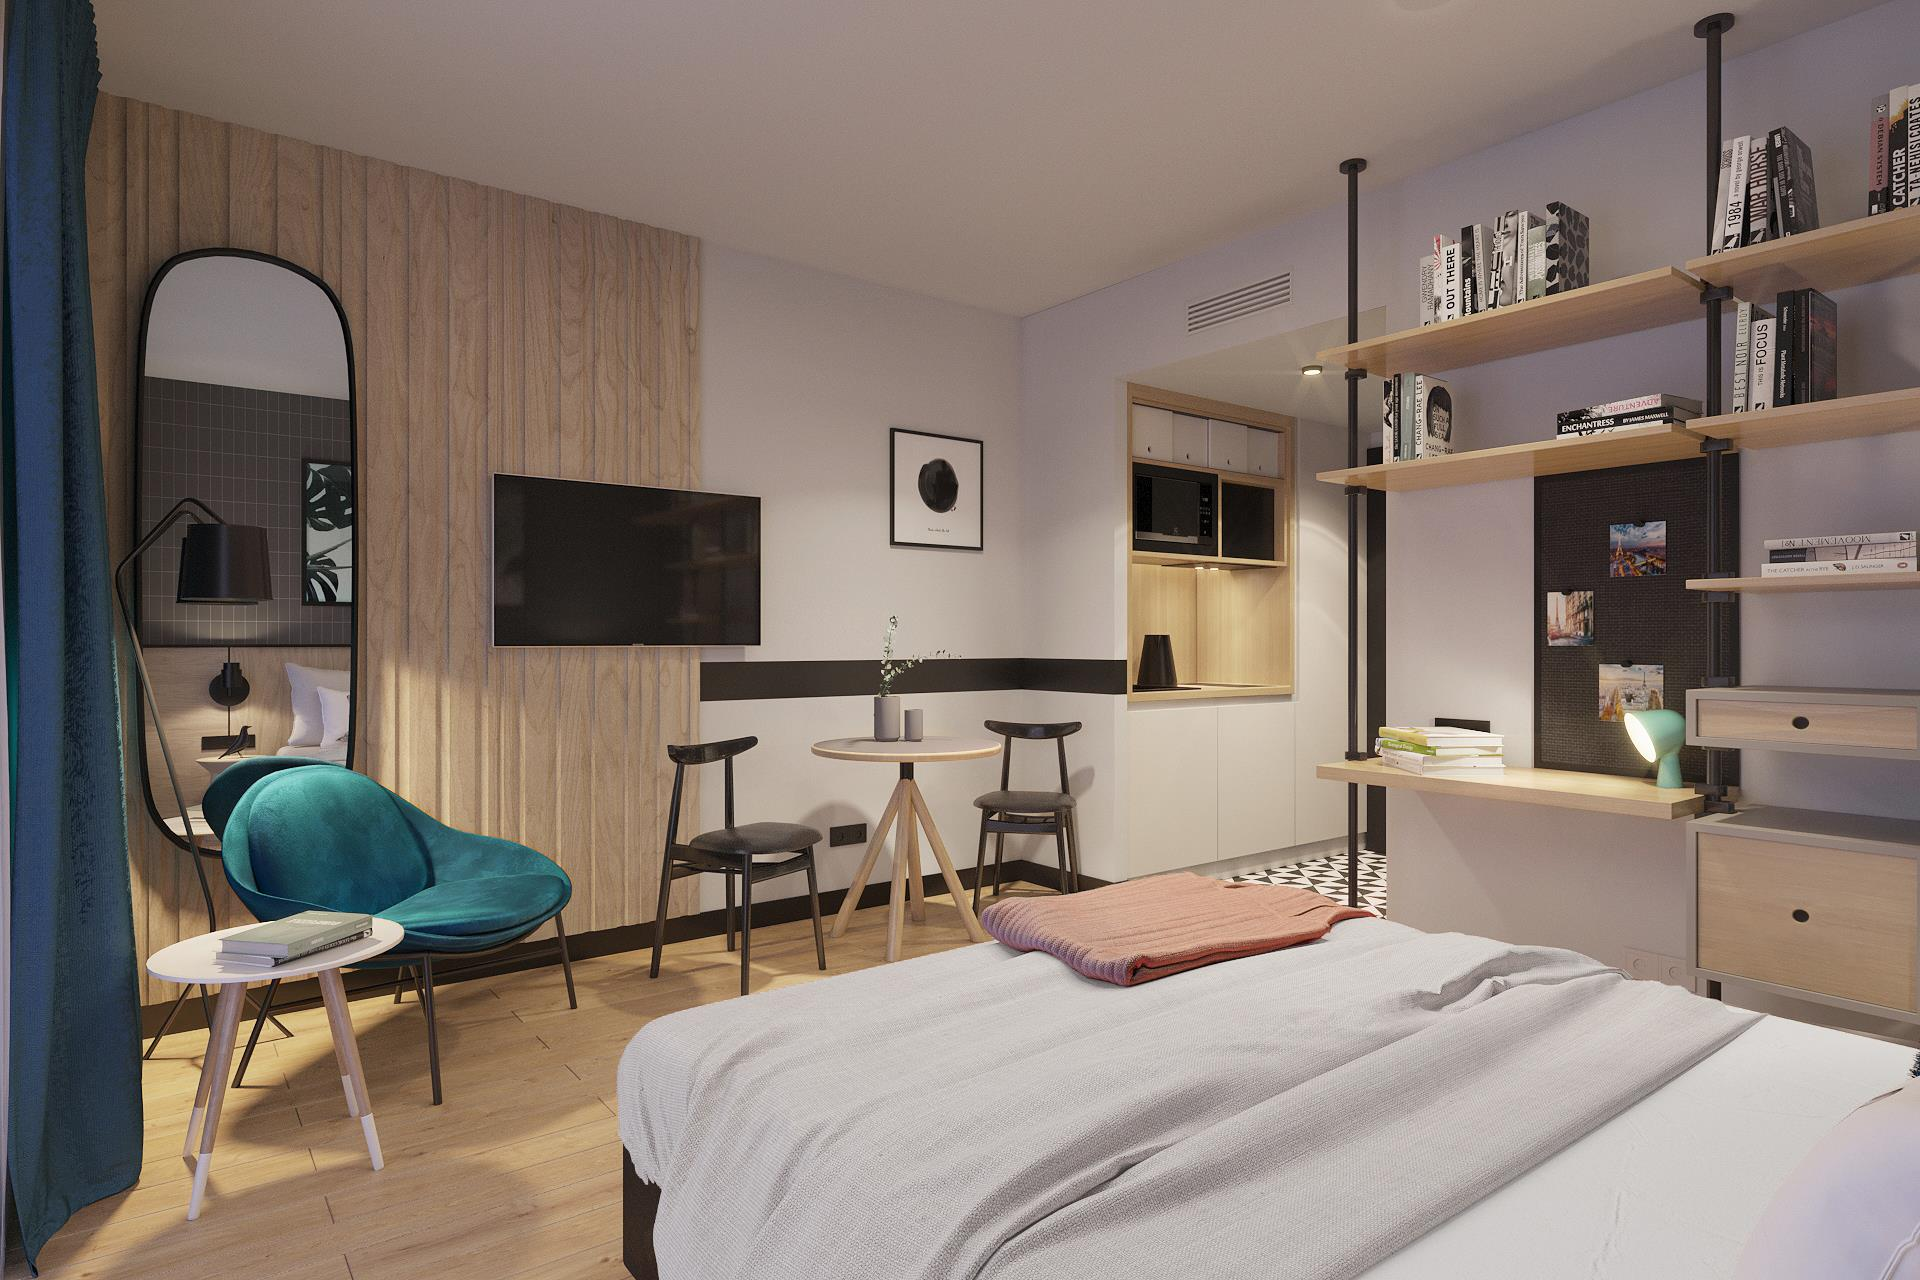 Tulip double studio residences with kitchenette and library